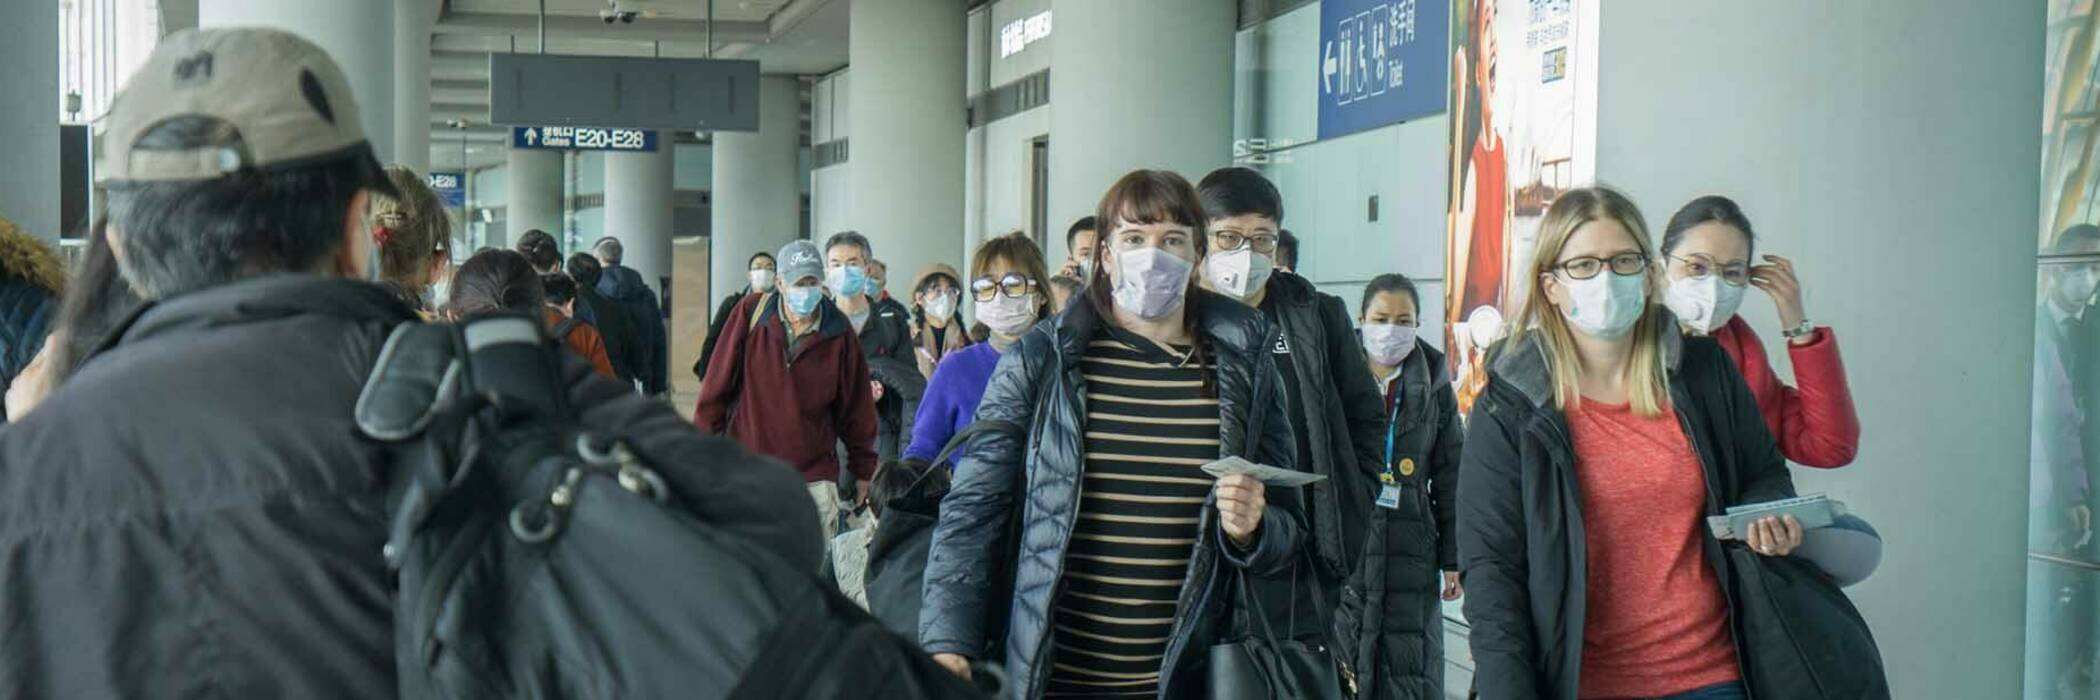 Travellers in airport wearing face masks.